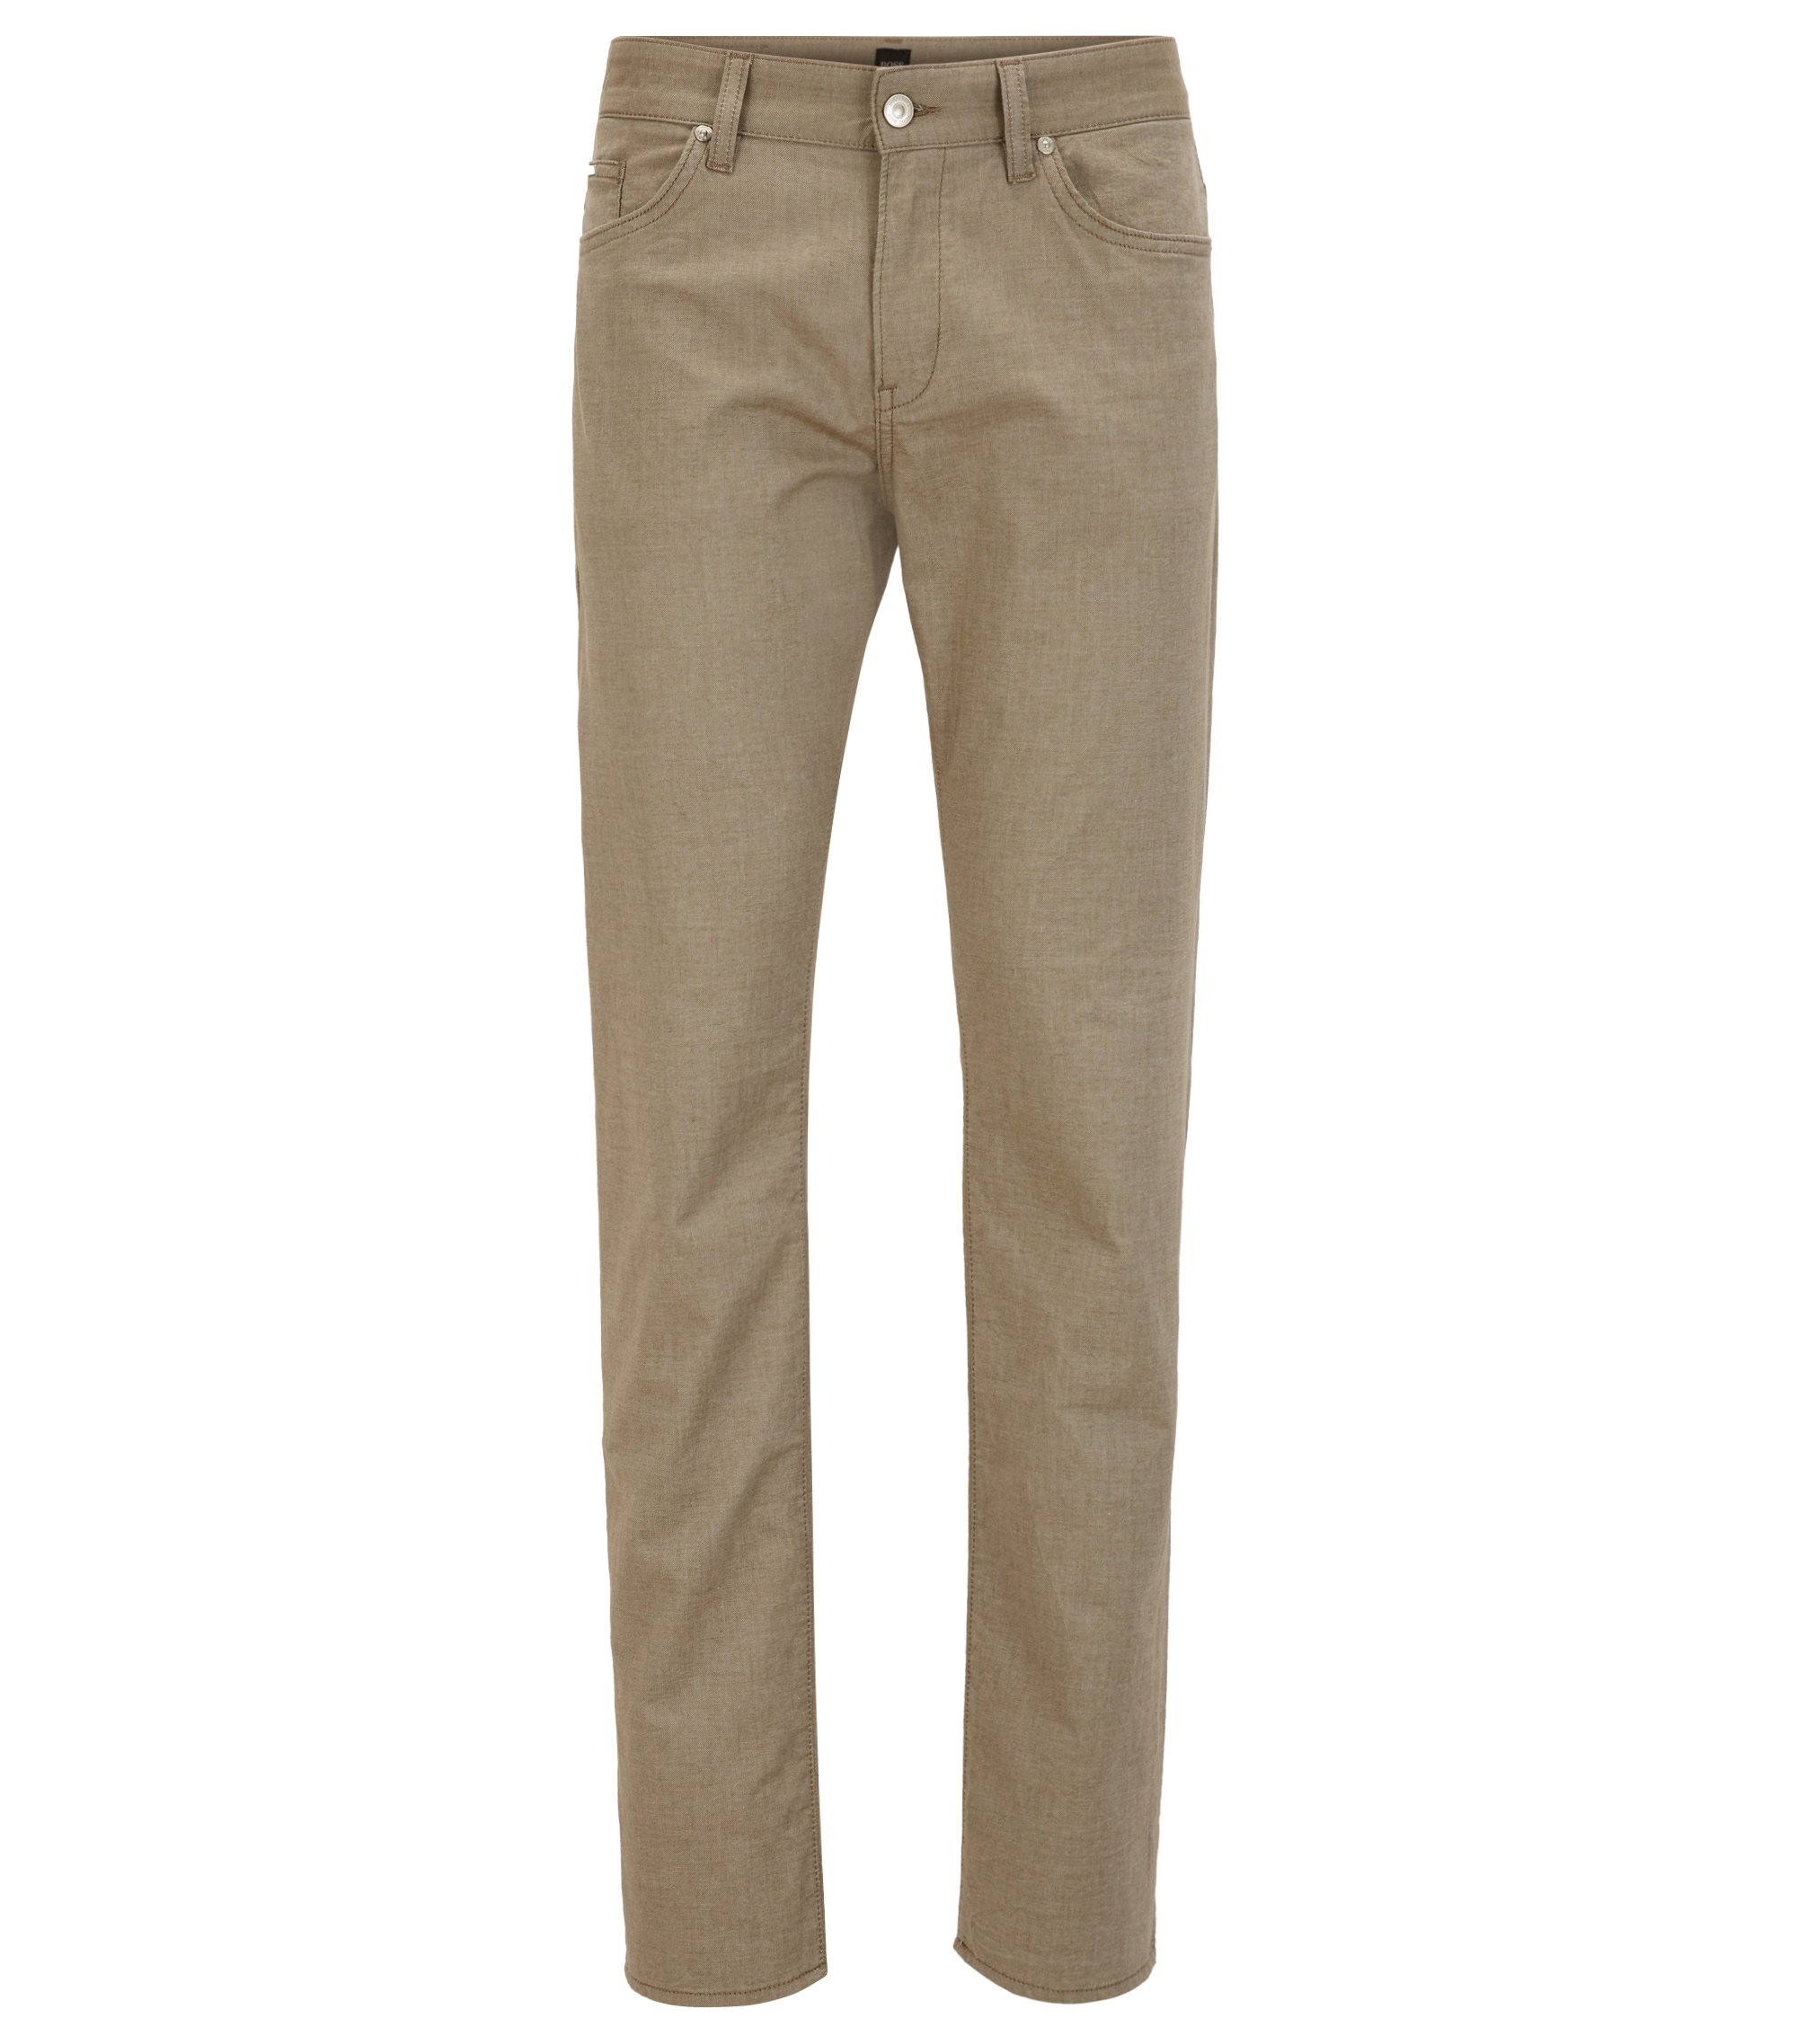 Stretch Cotton Pant, Slim Fit | Delaware, Beige